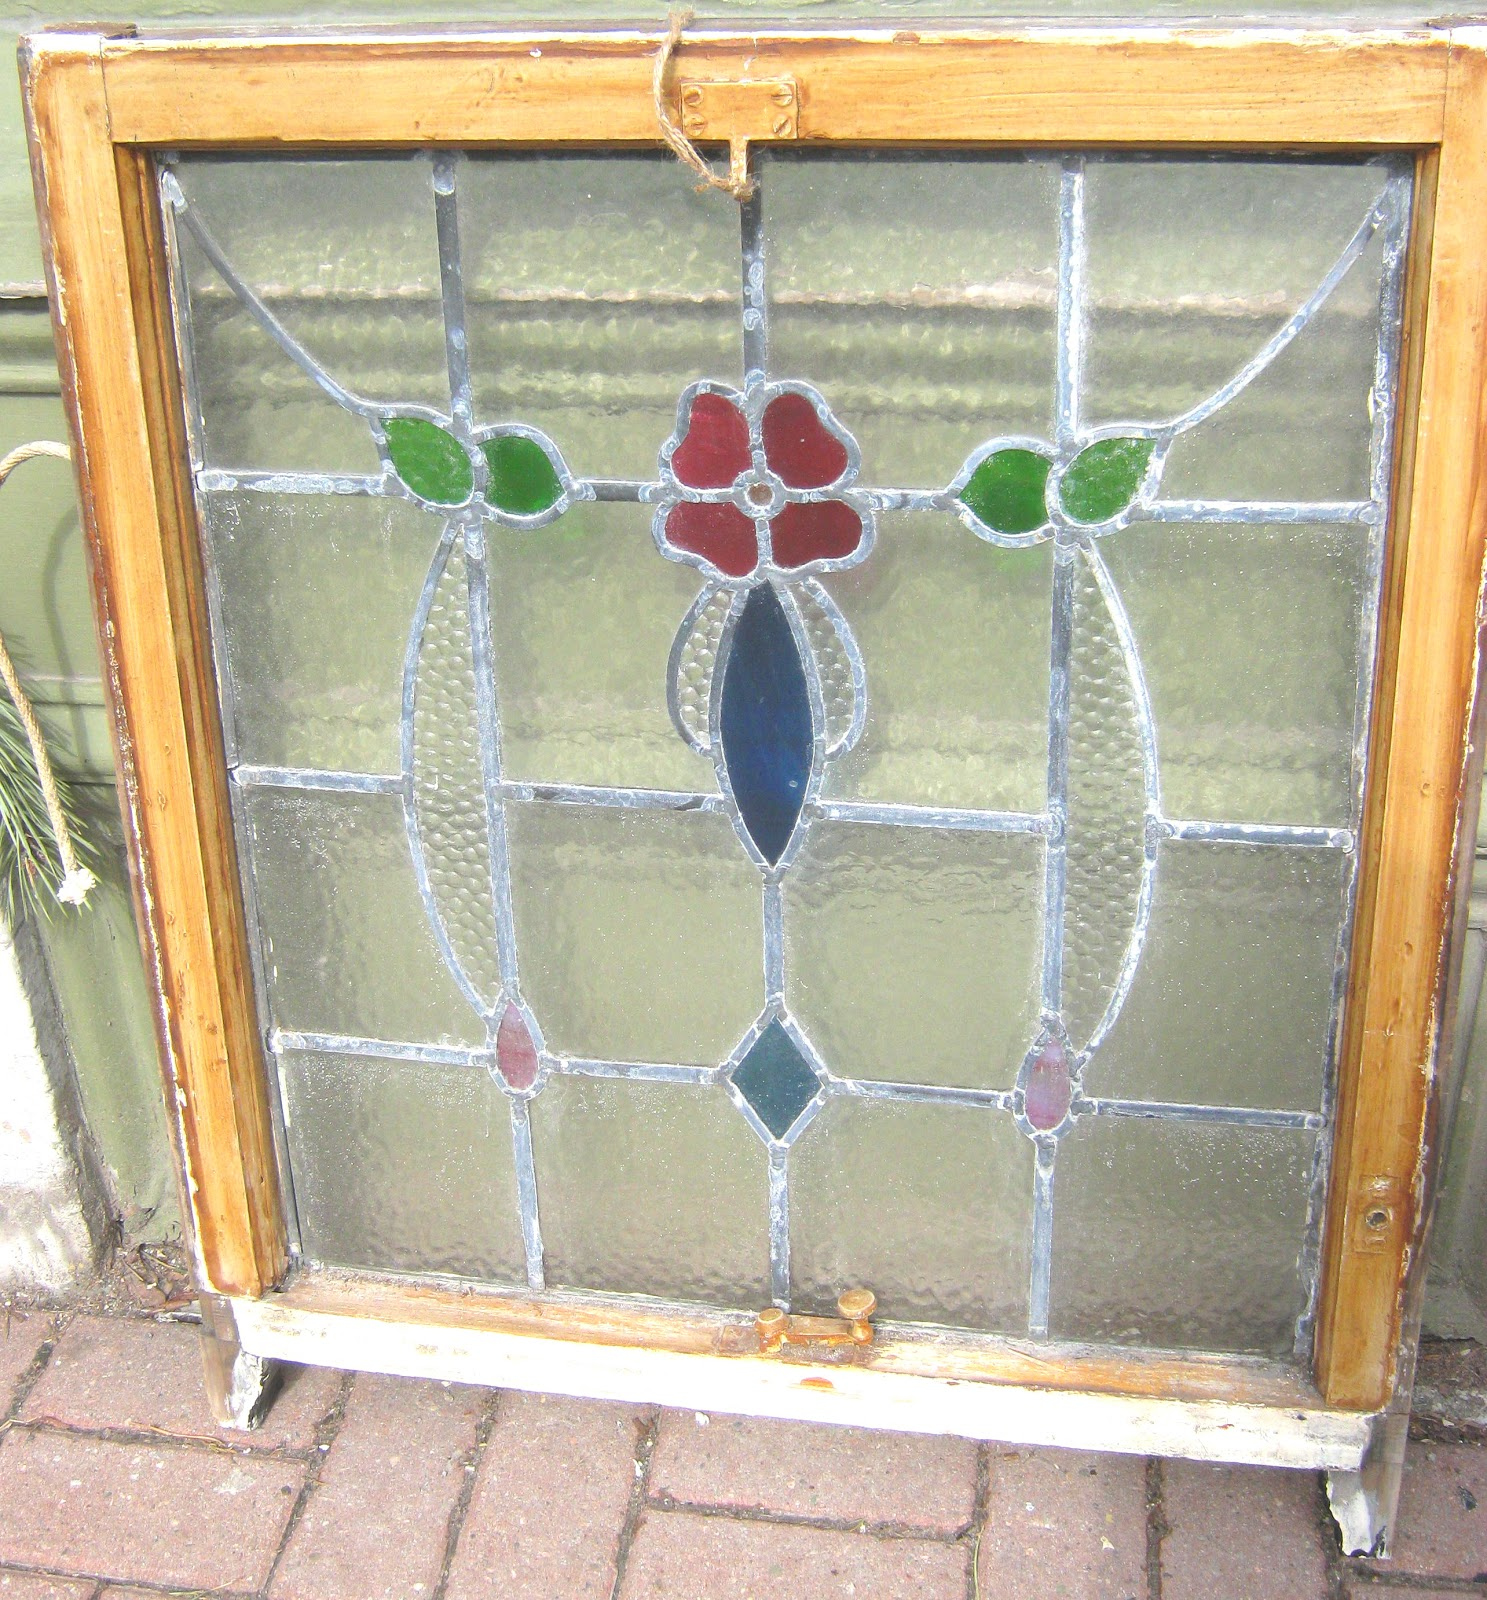 funk gruven a z stained glass window in frame 3 available